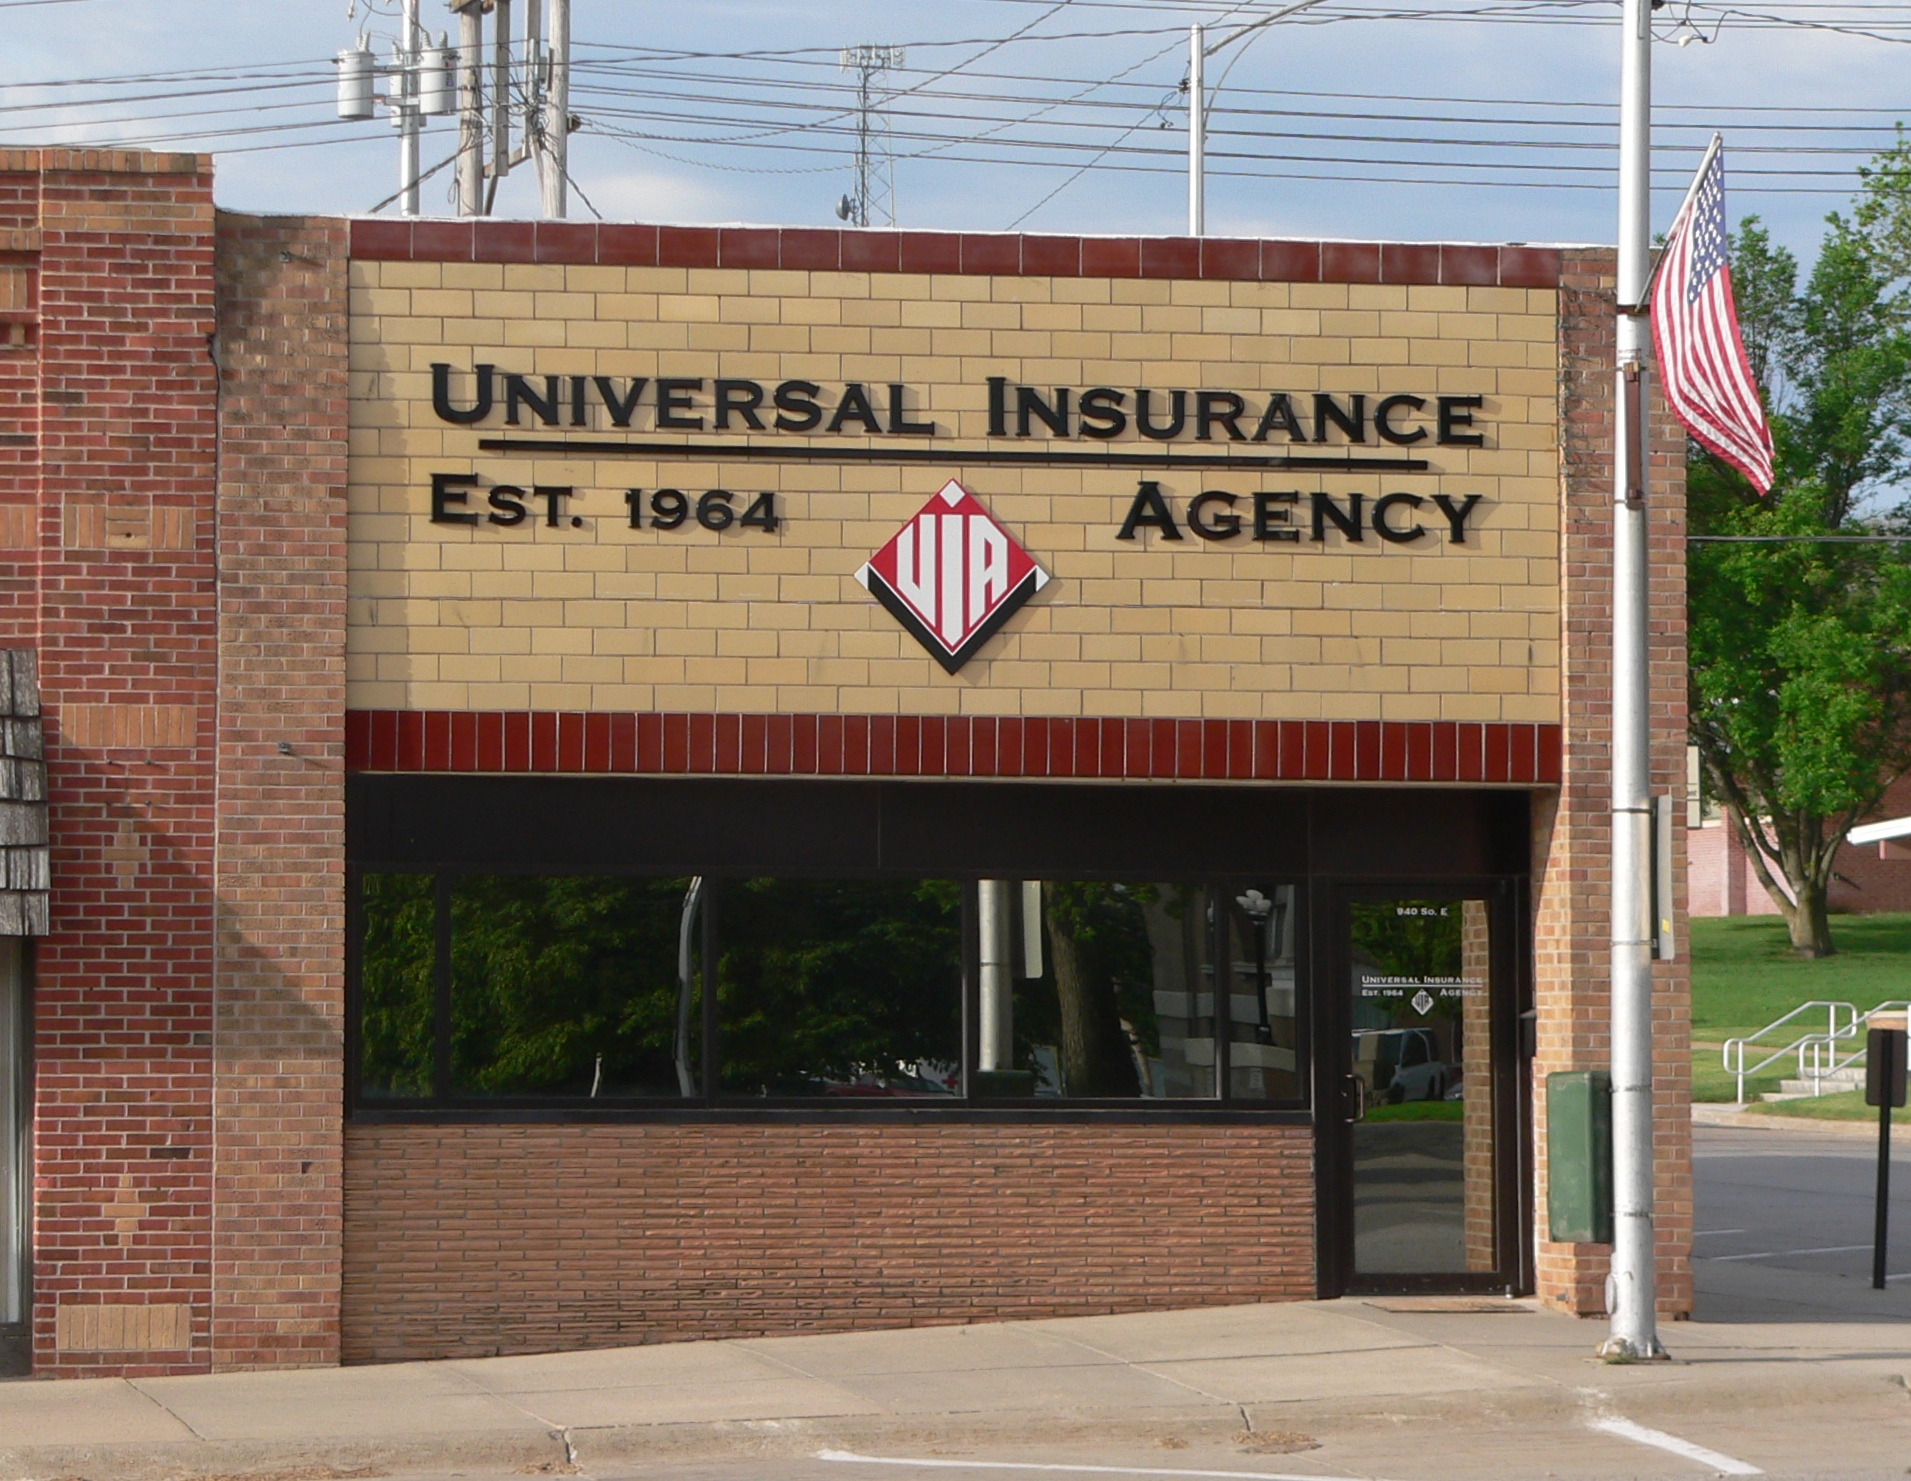 Universal Insurance Property And Casualty